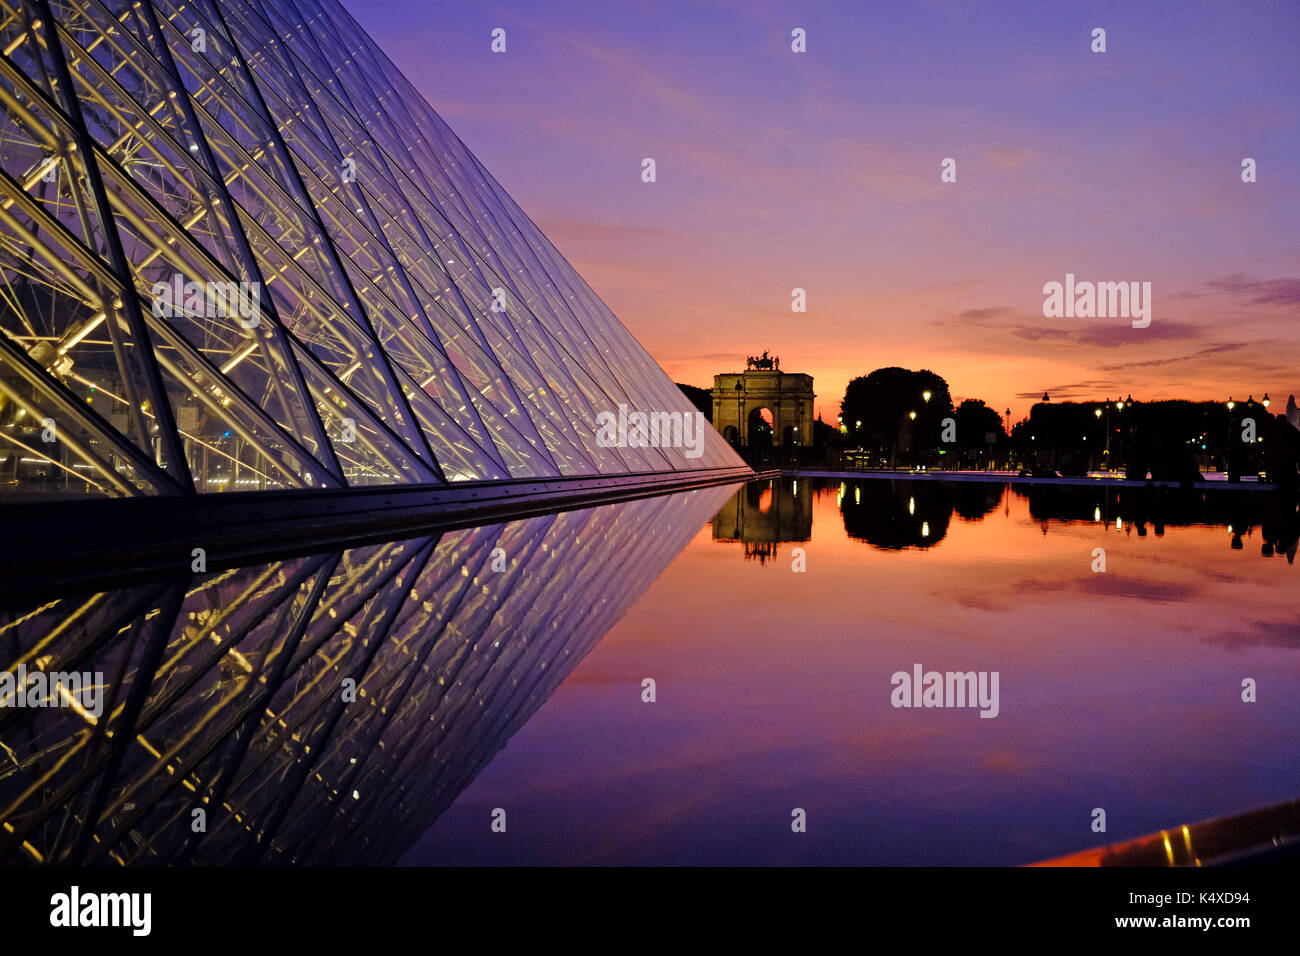 The Louvre in Paris at night as the sun sets - Stock Image